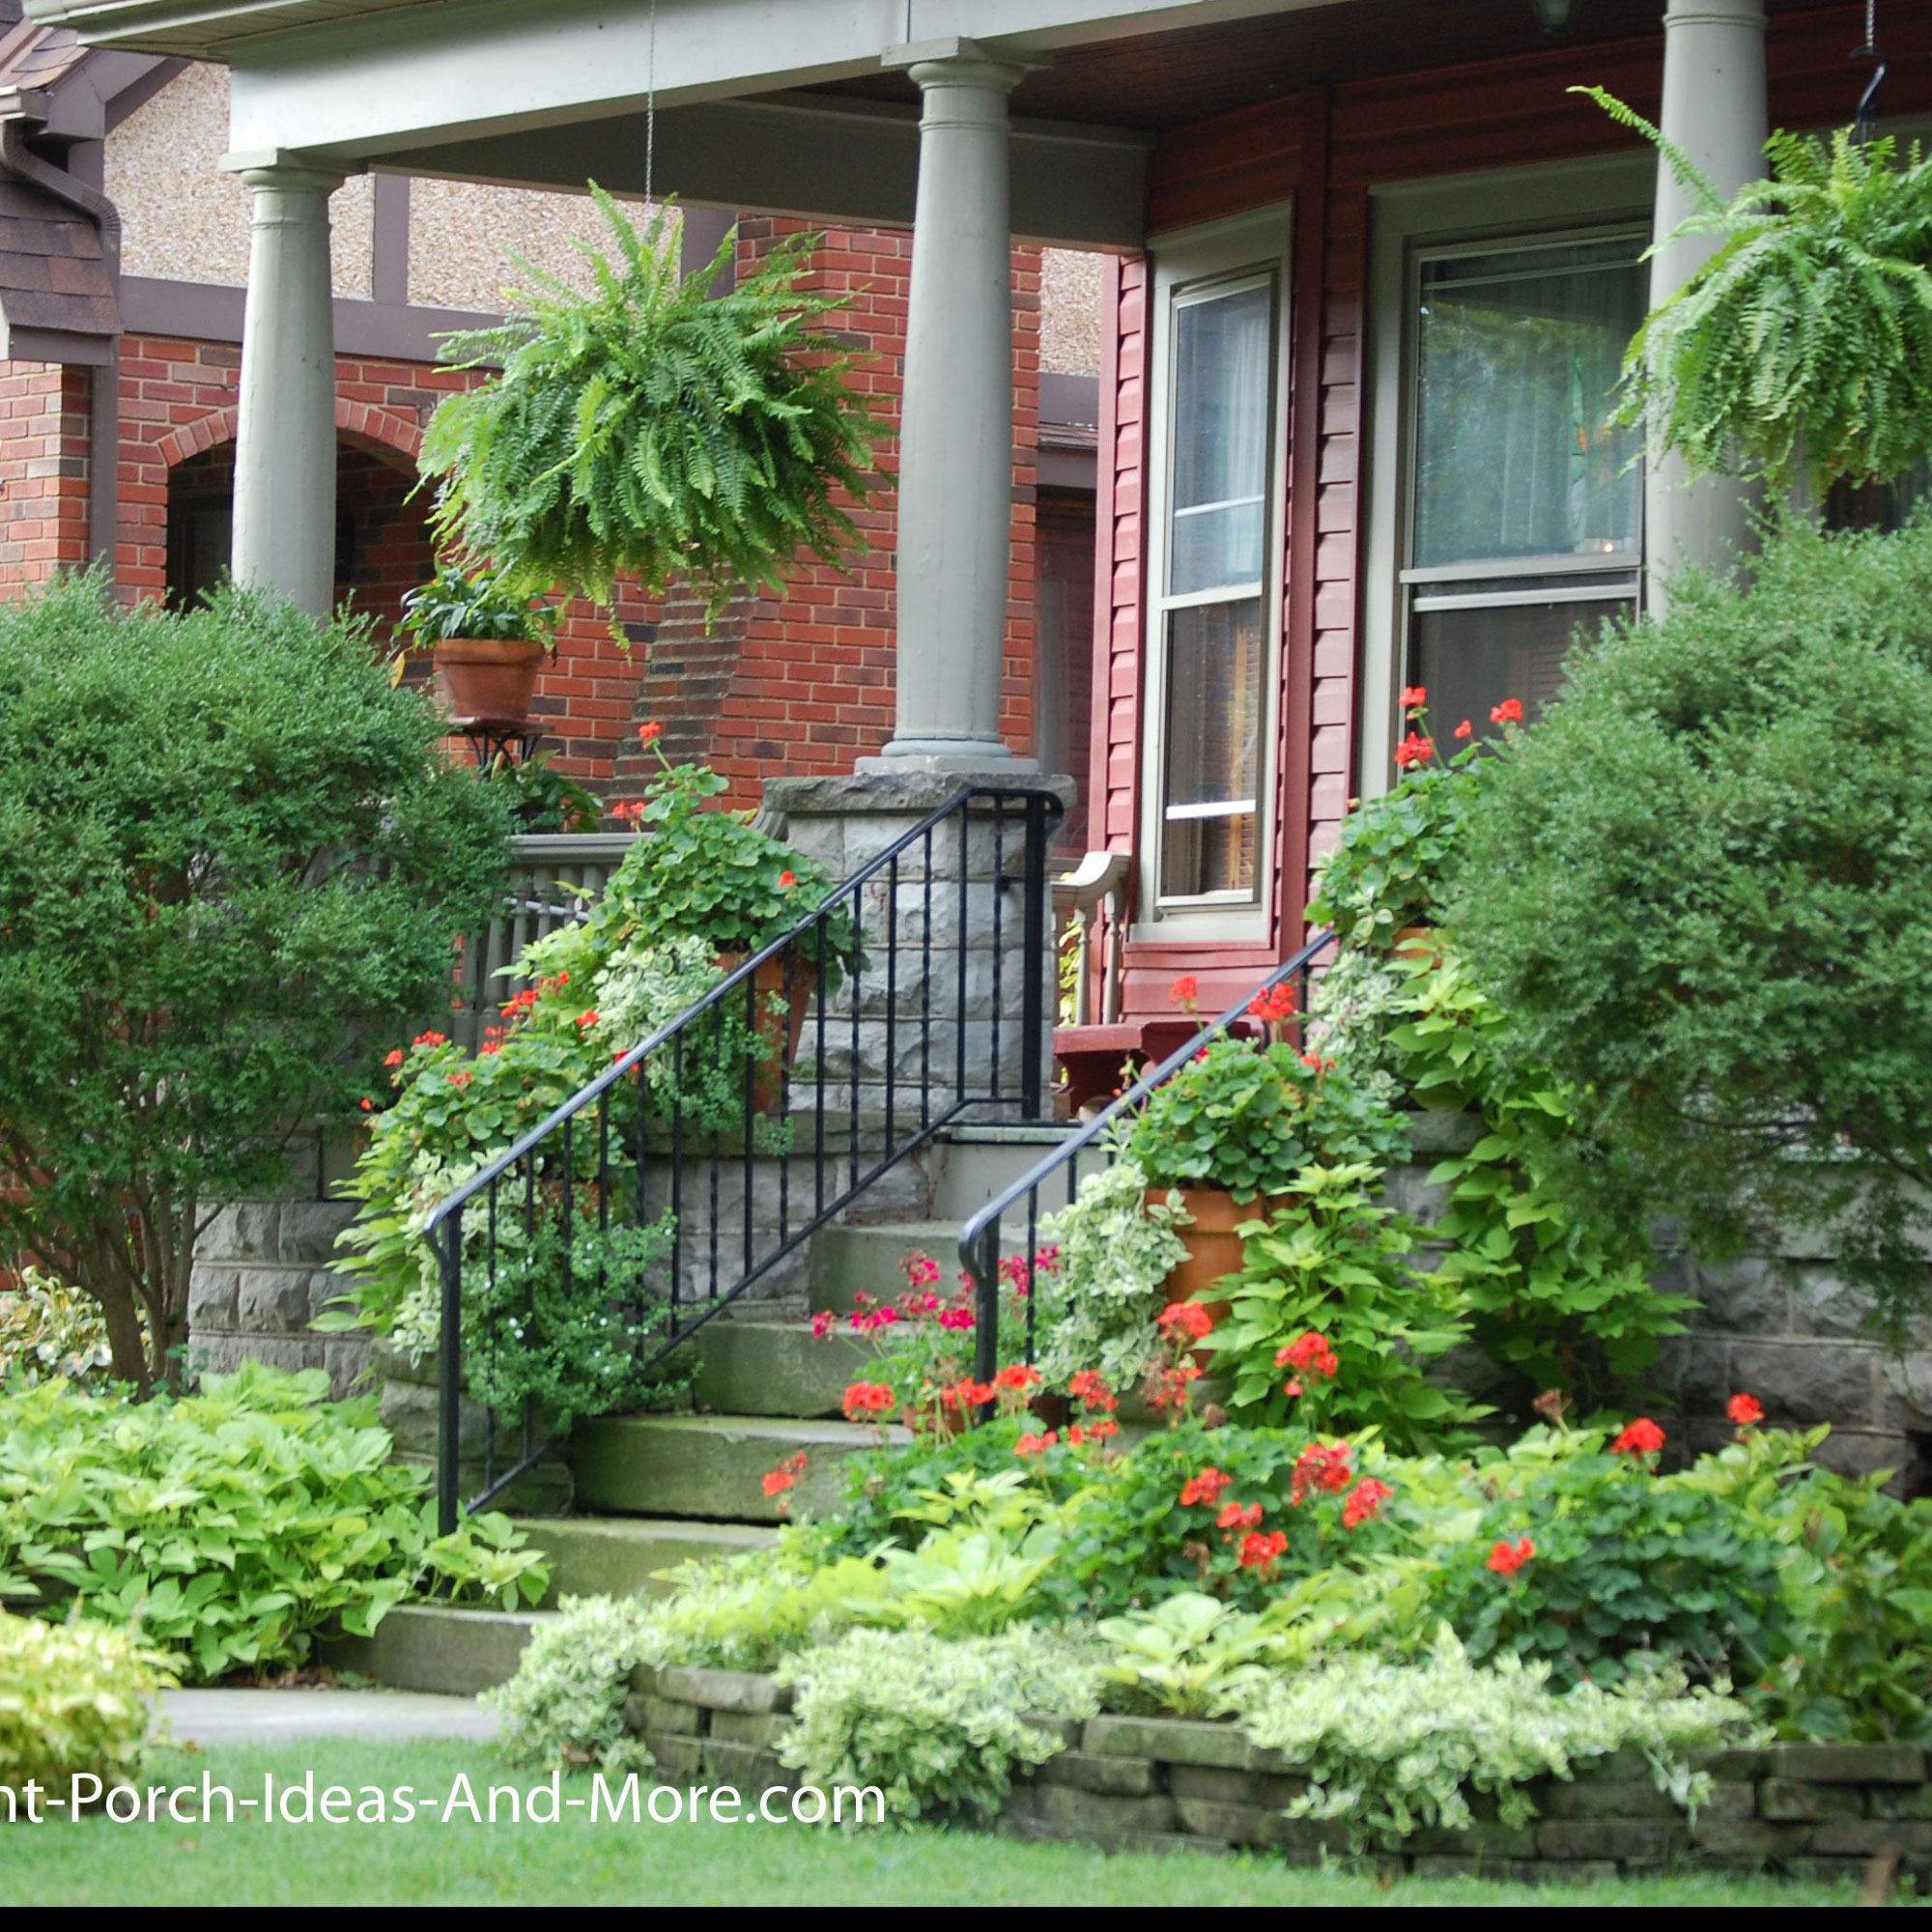 Porch landscaping ideas for your front yard and more for Design your front garden